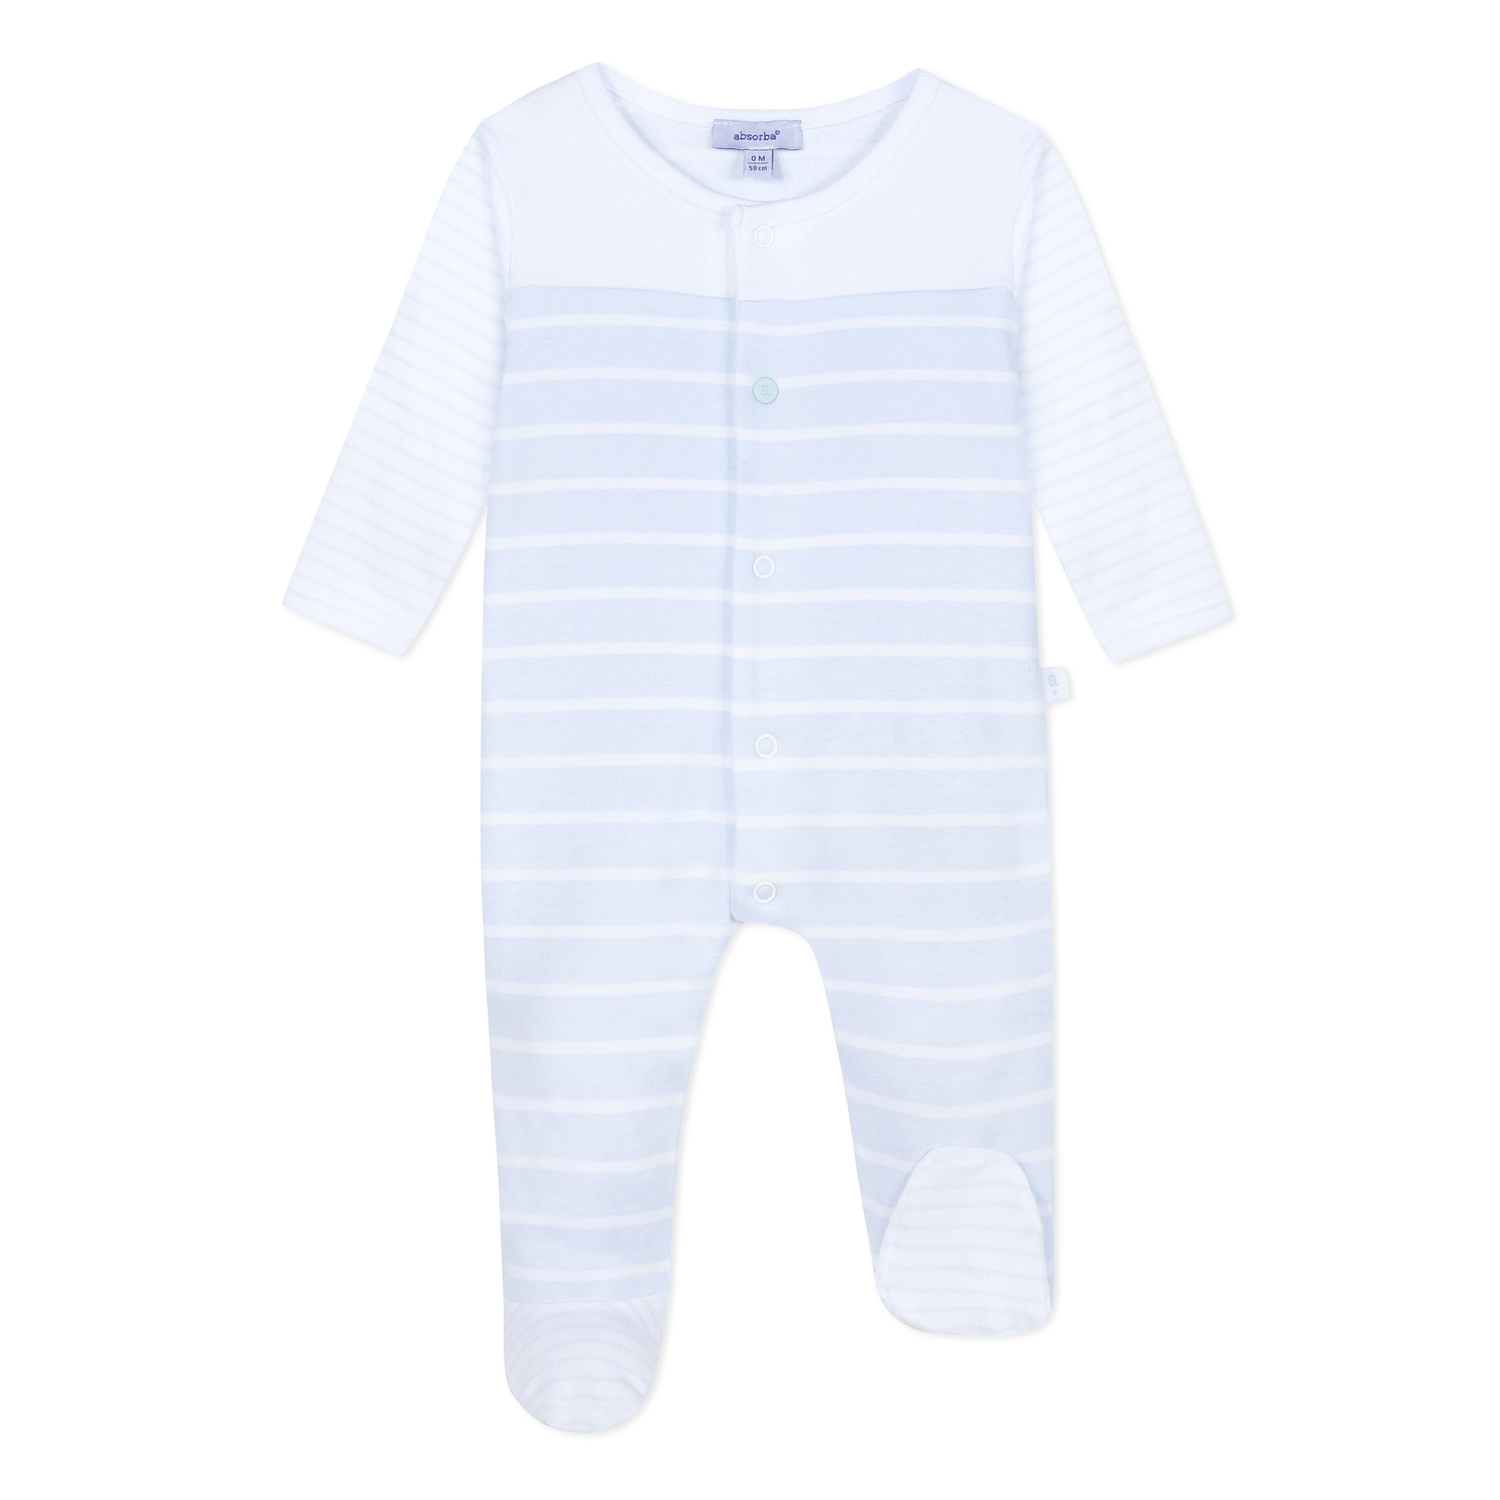 973c020e0 Absorba - Baby Boys White   Pale Blue Stripes Cotton Jersey All In One